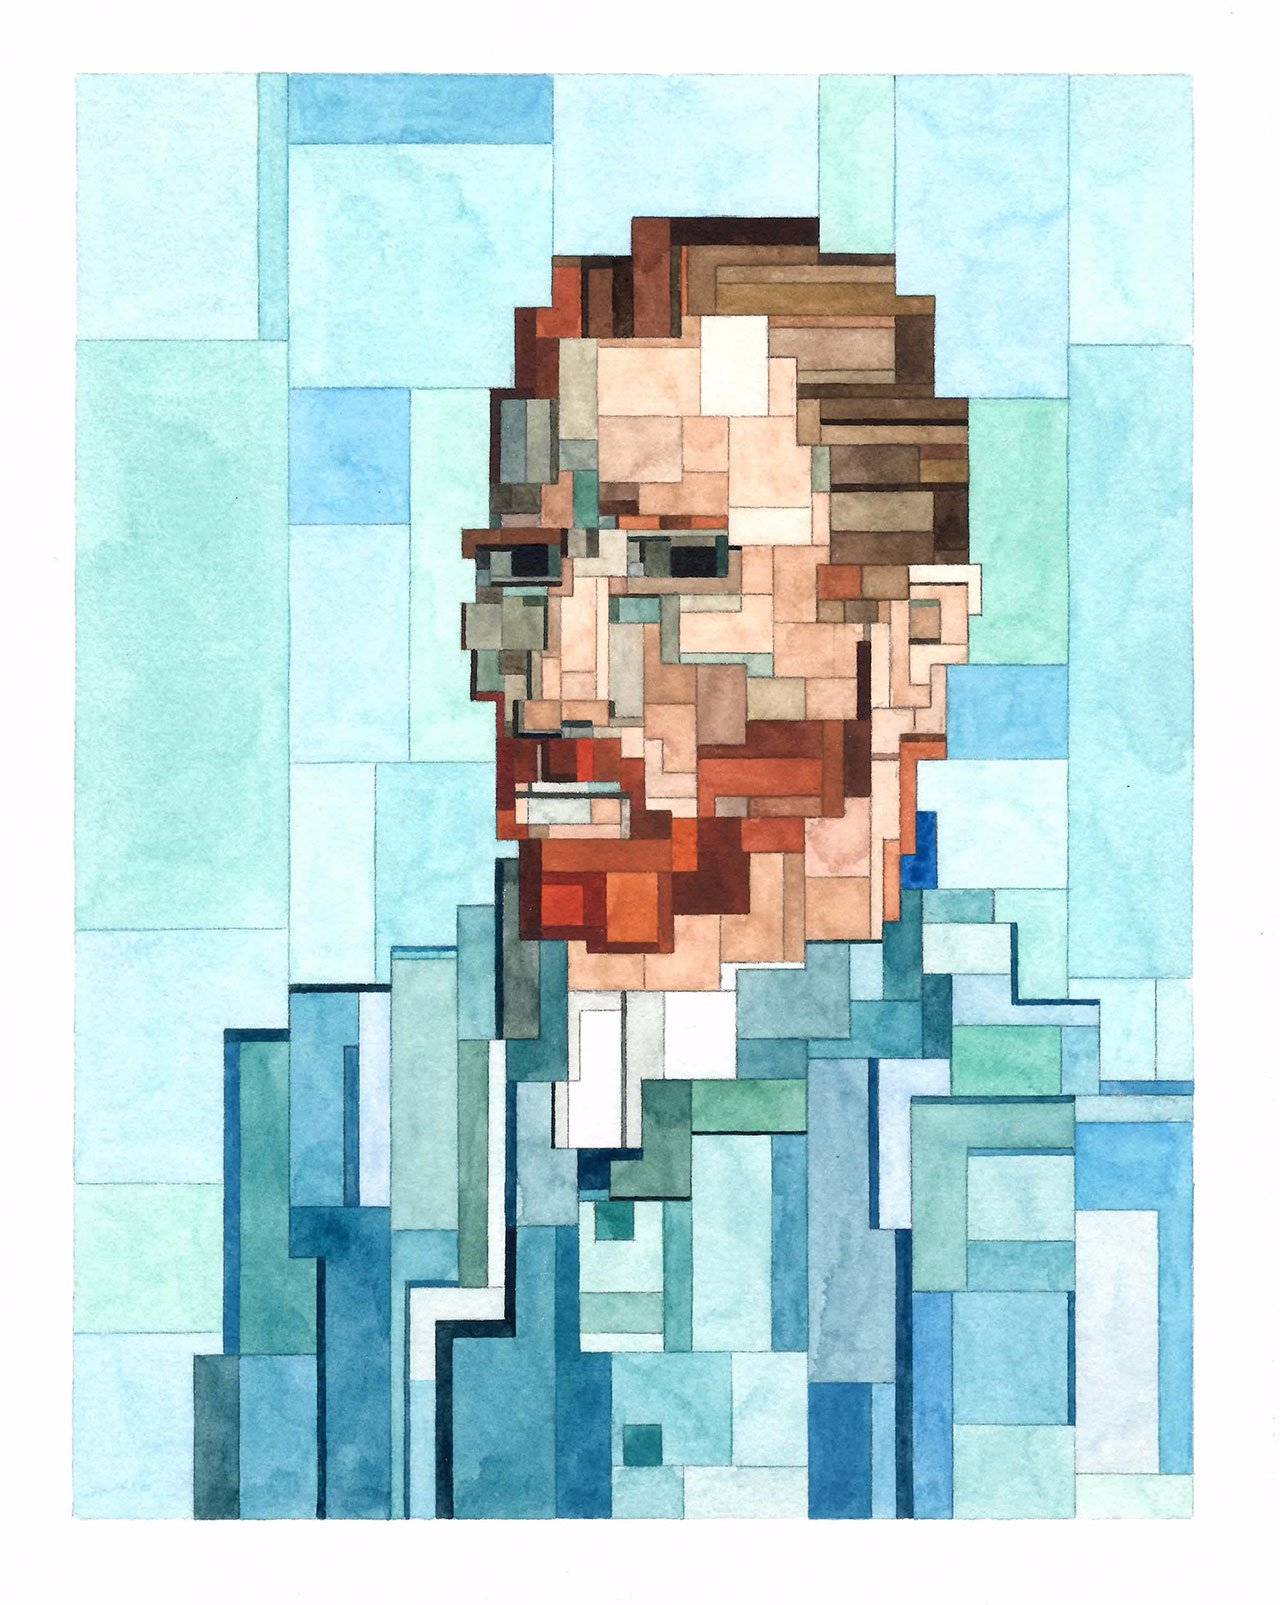 Van Gogh self-portrait, Art History 101 series by Adam Lister.(Original Painting by Vincent van Gogh, 1889).